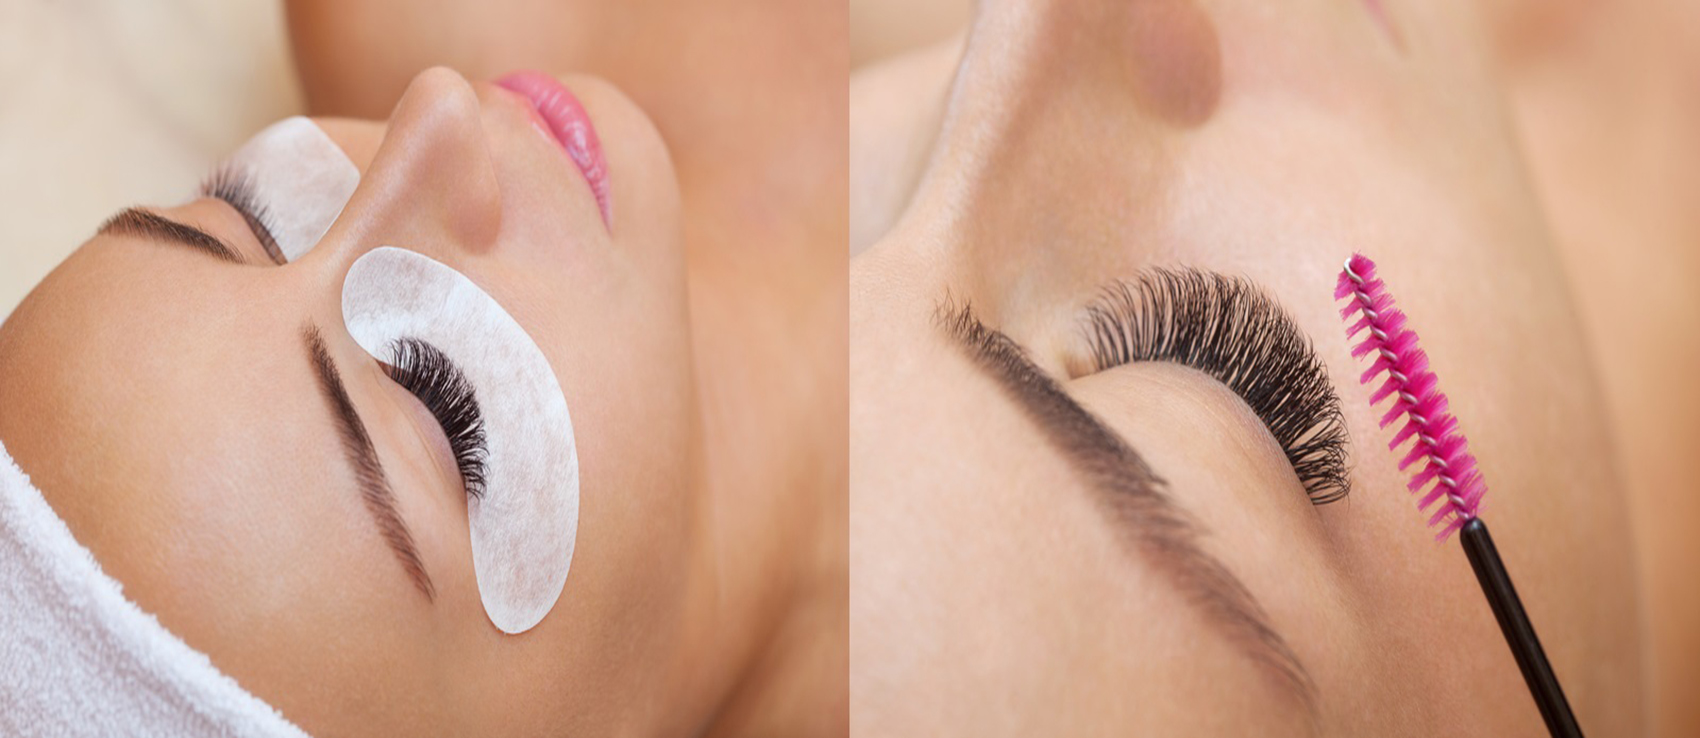 Deluxe Lash Studio - Eyelash salon in Sugar Land, TX 77479